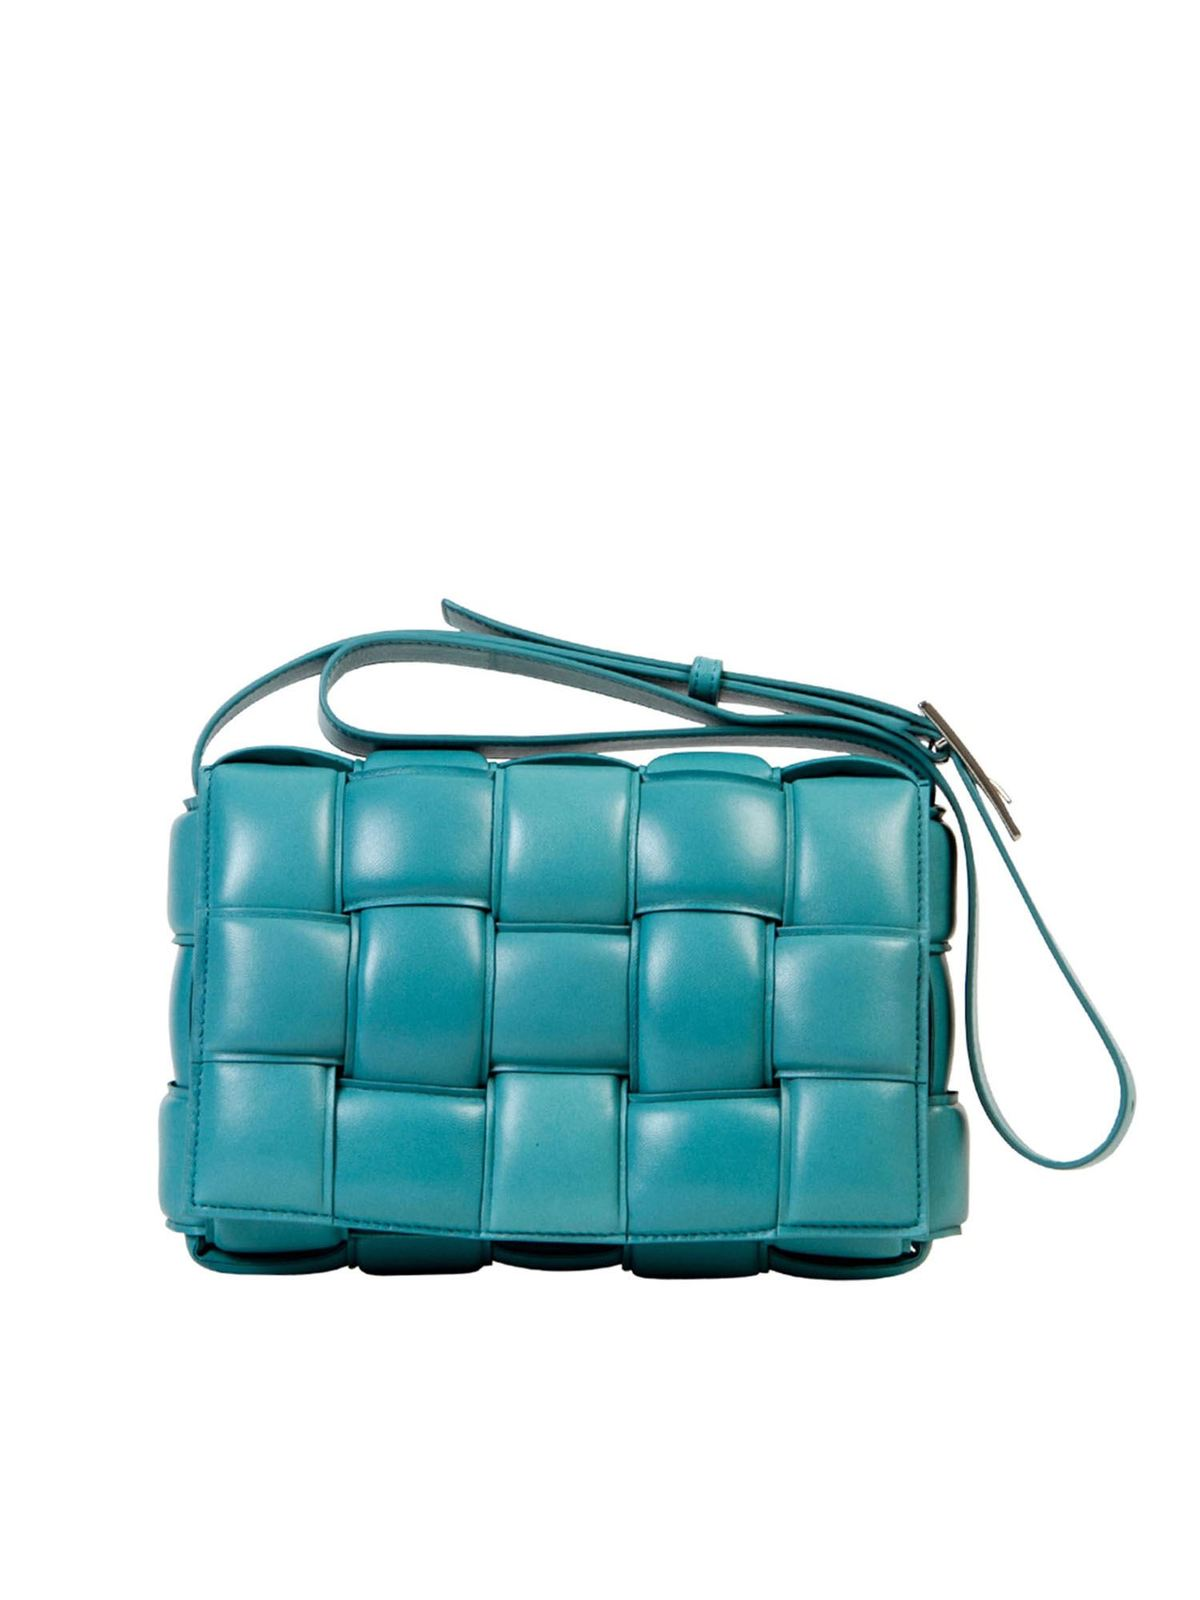 BOTTEGA VENETA PADDED CASSETTE BAG IN LINOLEUM COLOR